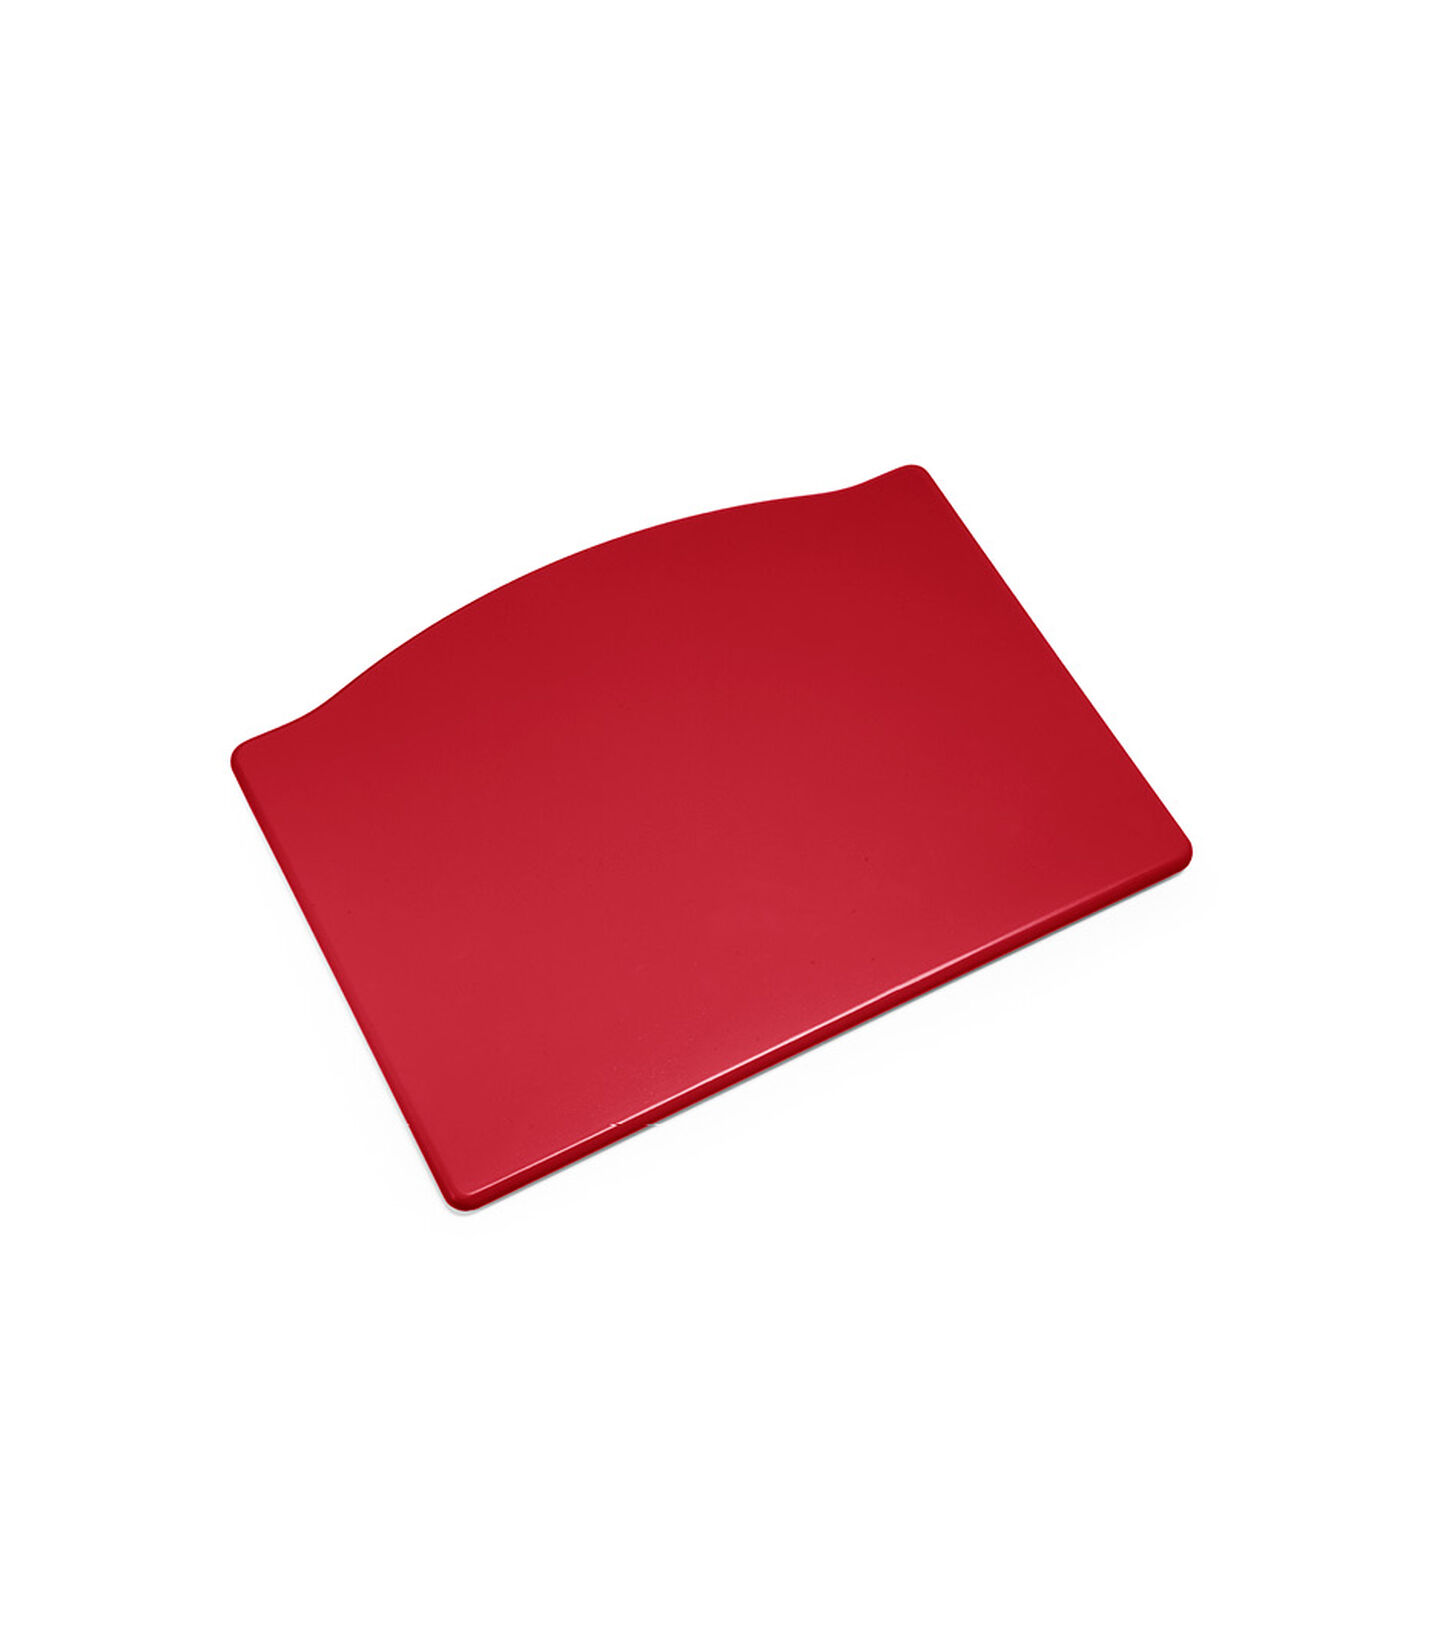 Tripp Trapp® Footplate Red, Red, mainview view 2